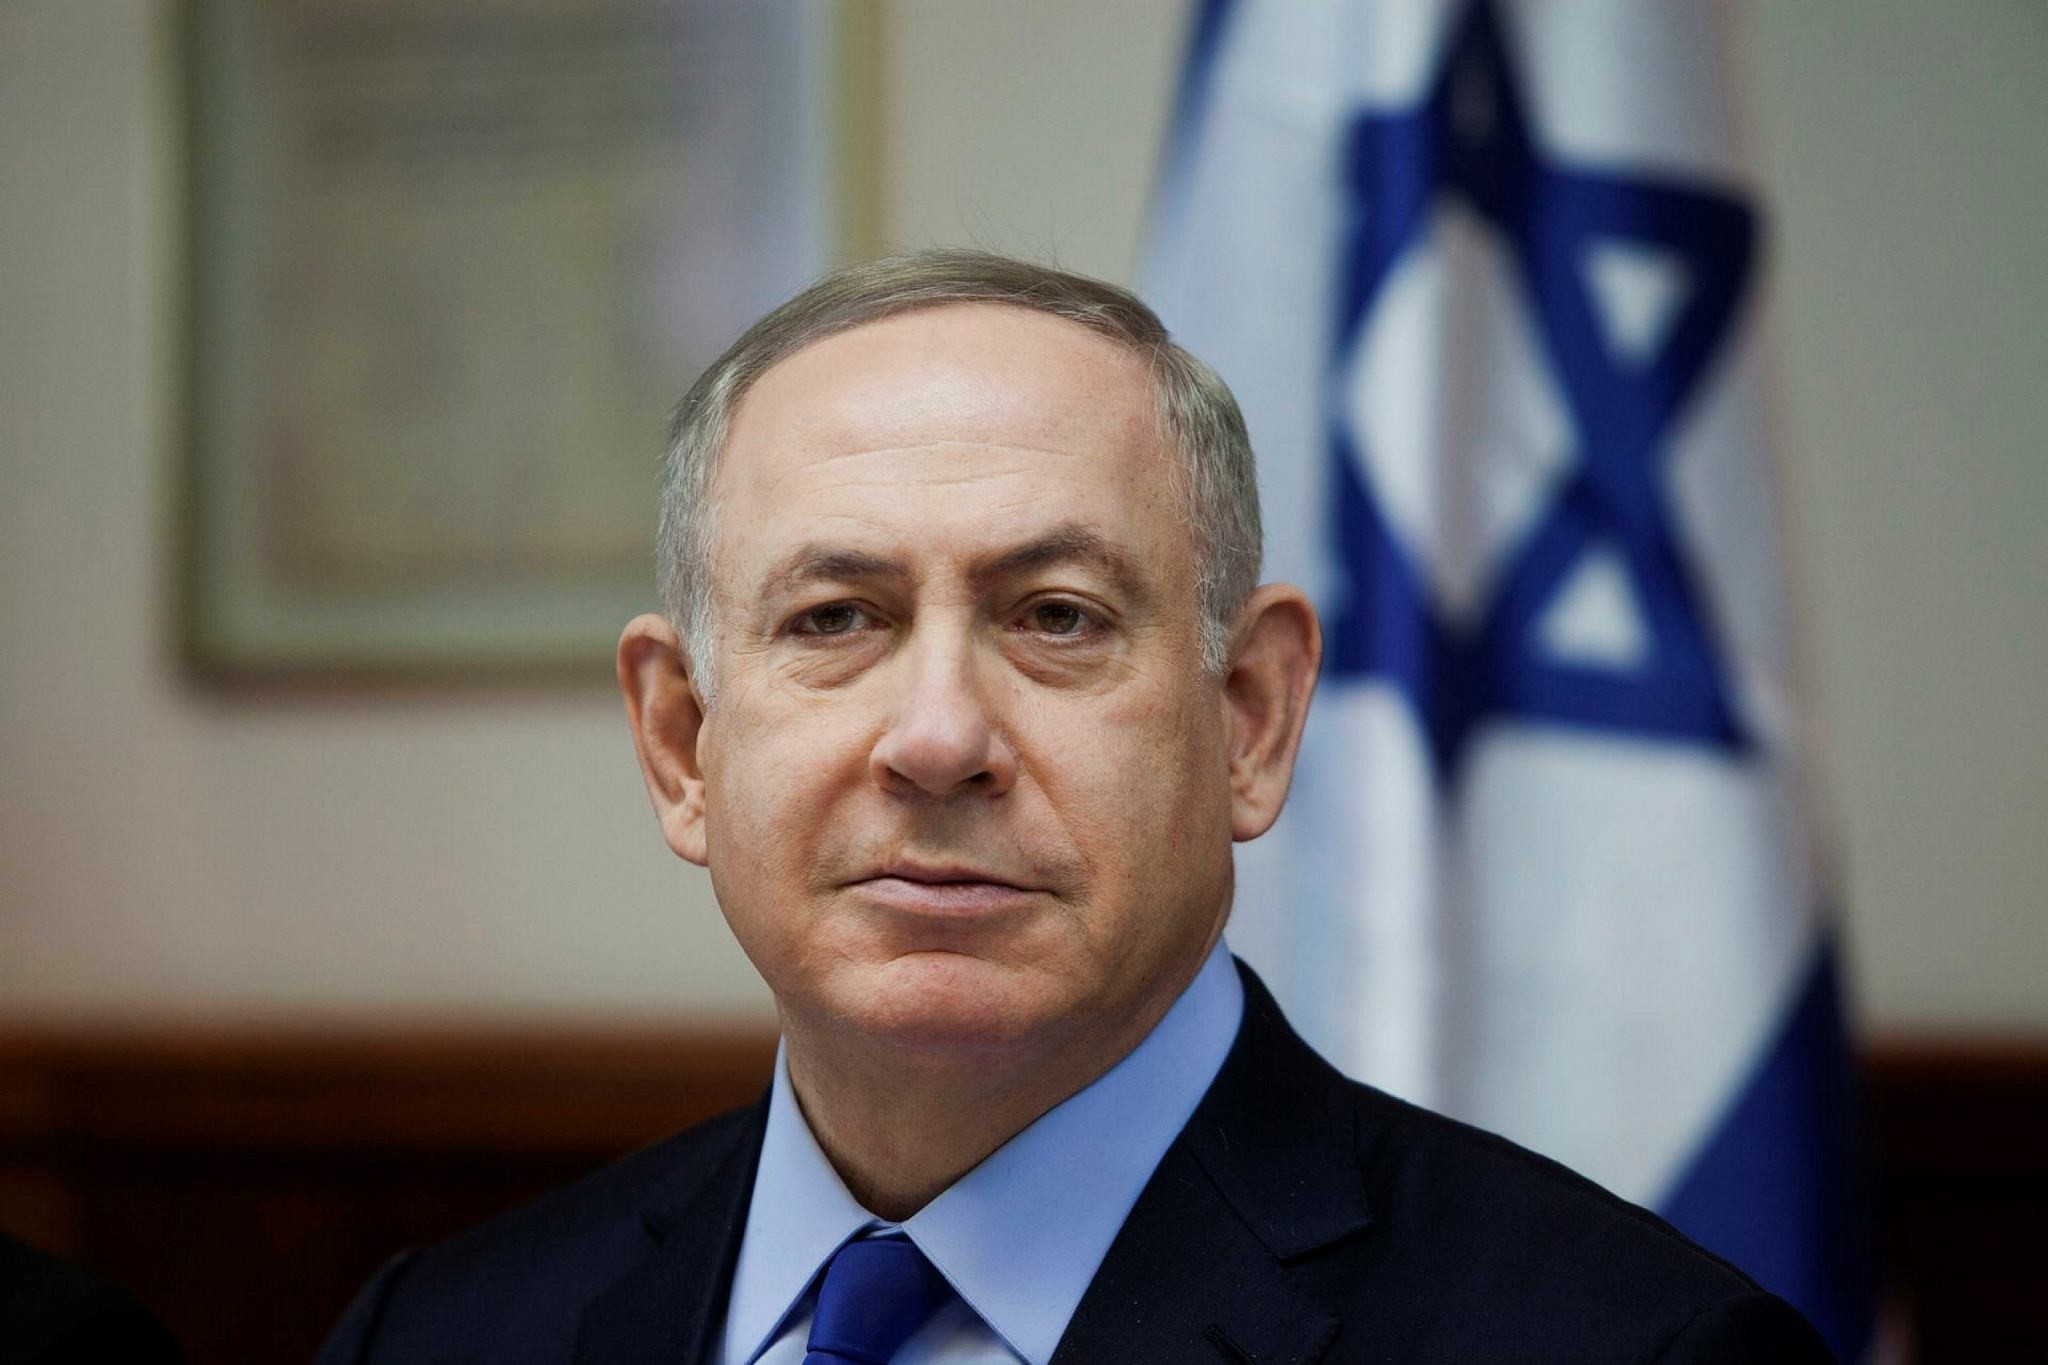 Israeli Prime Minister Benjamin Netanyahu called for a pardon for a soldier convicted of manslaughter in the fatal shooting of a badly wounded Palestinian assailant.